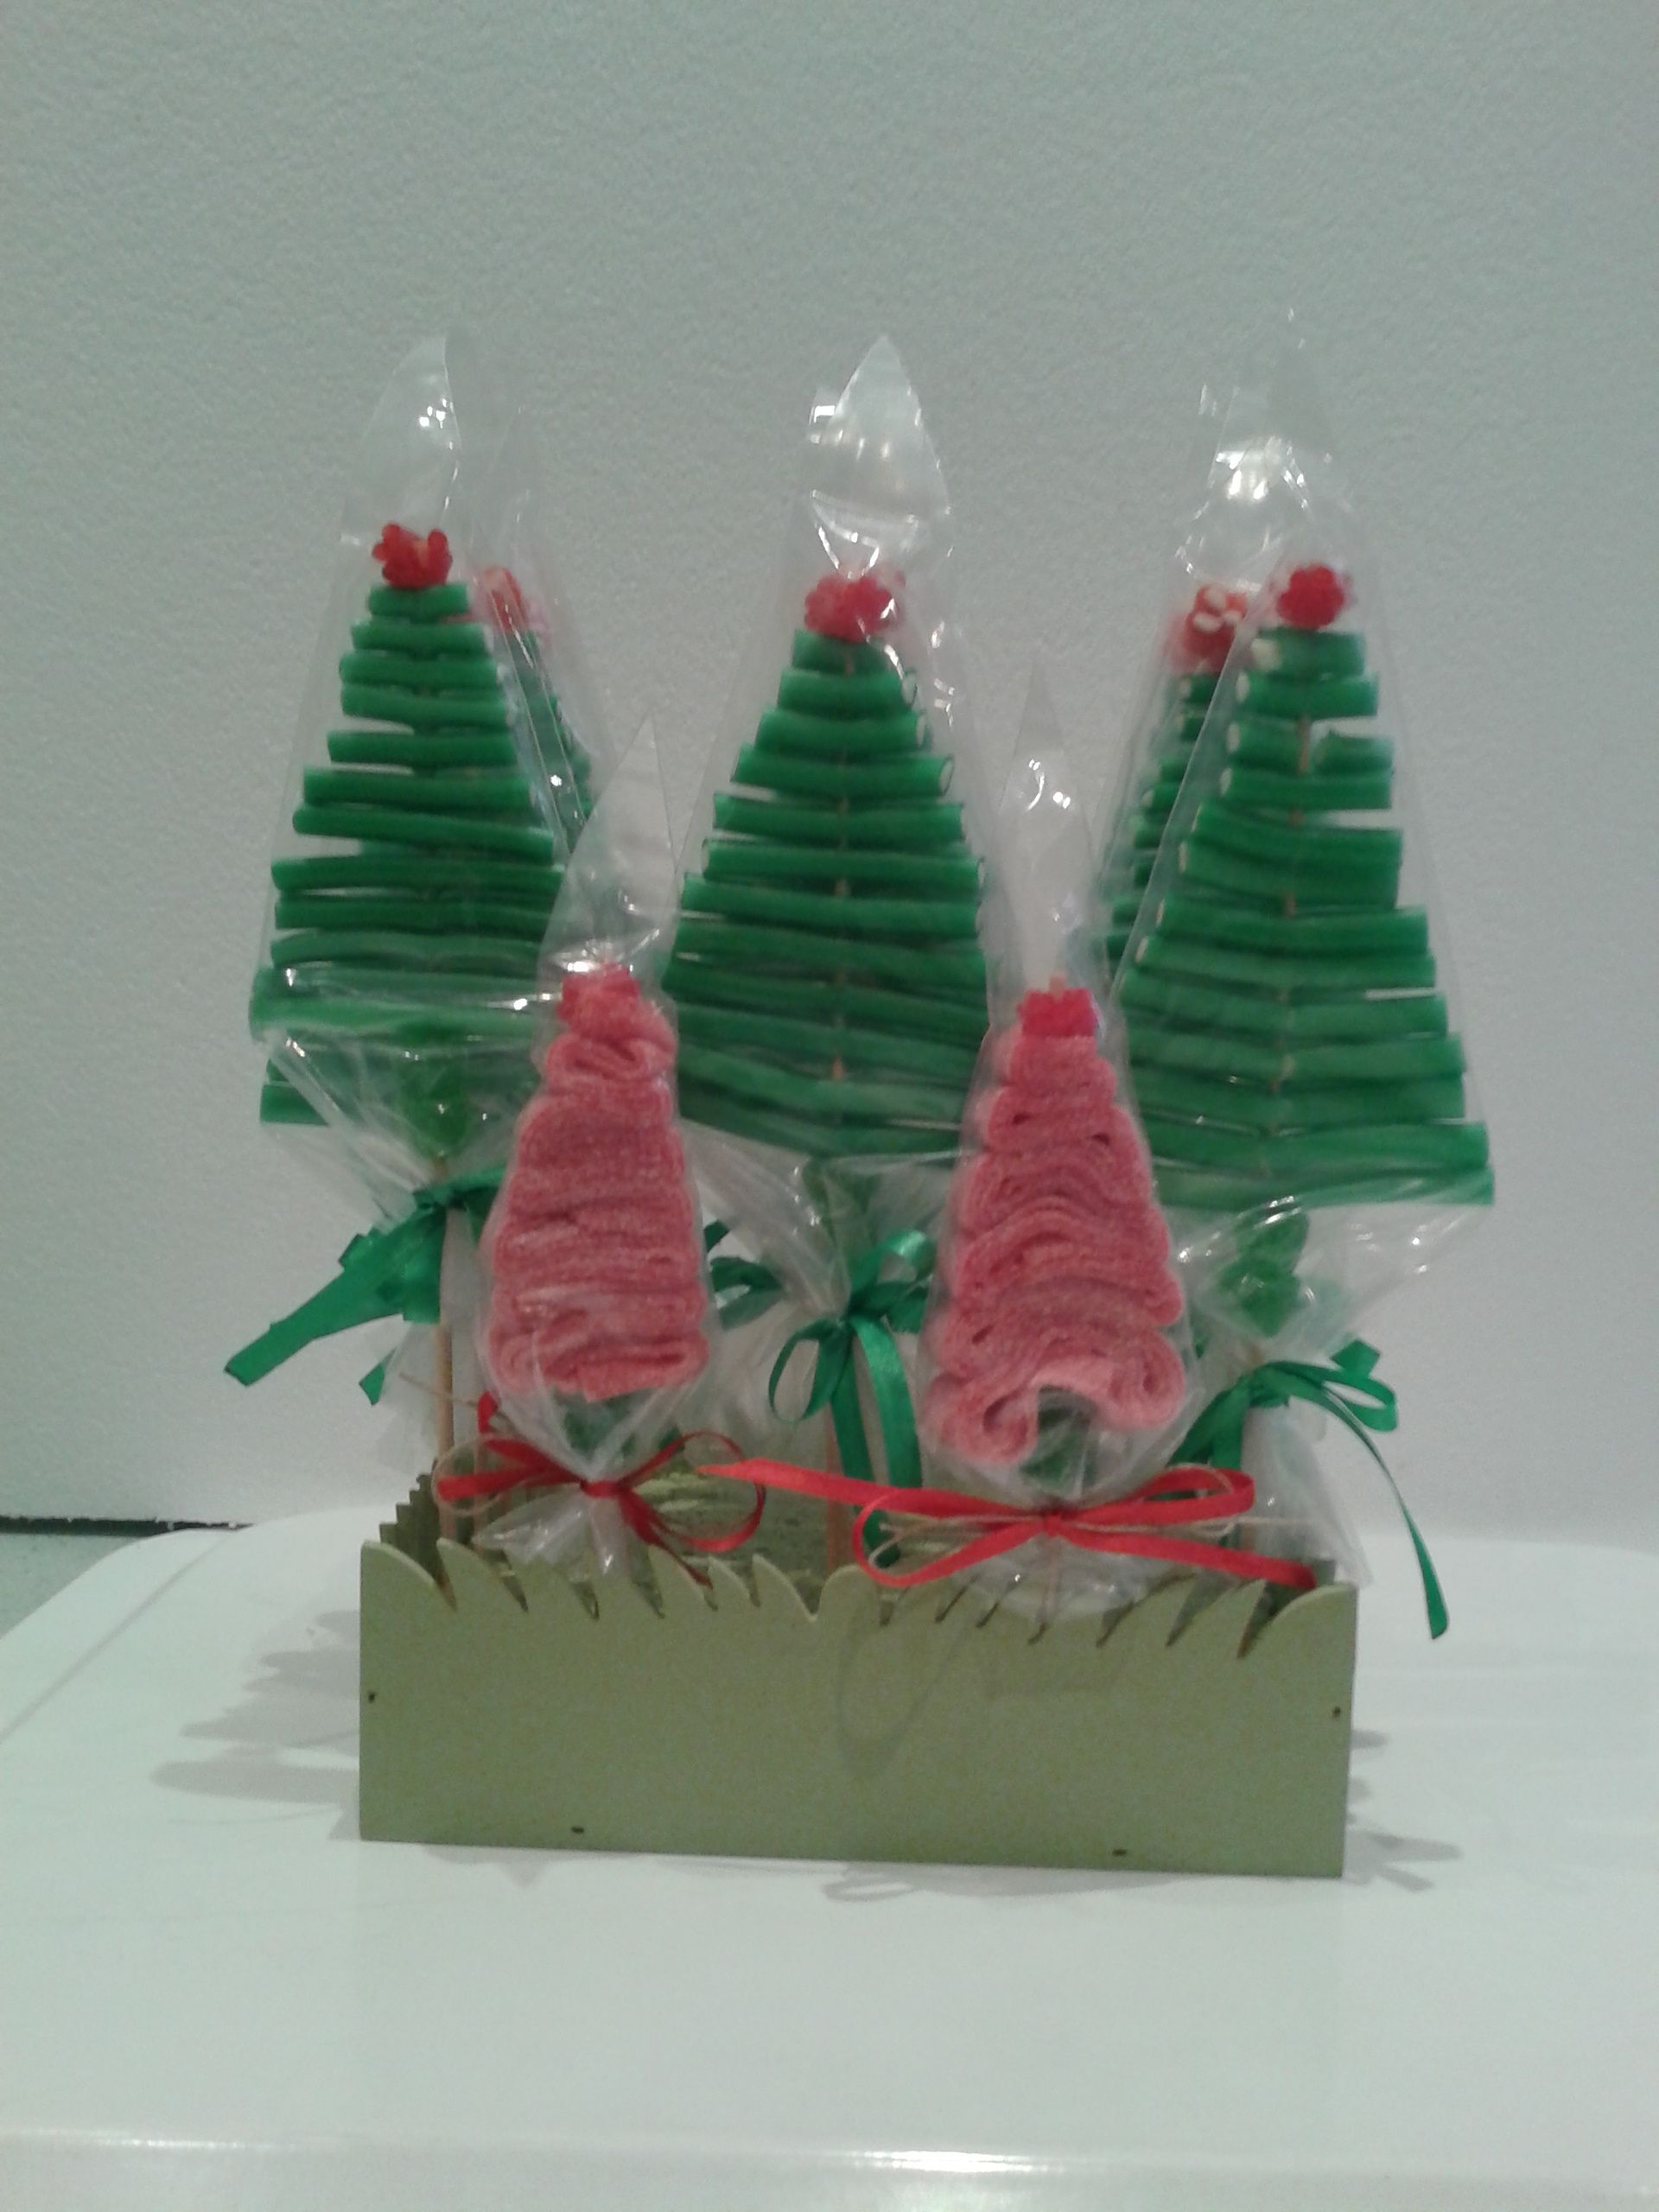 xmas trees with candy wands